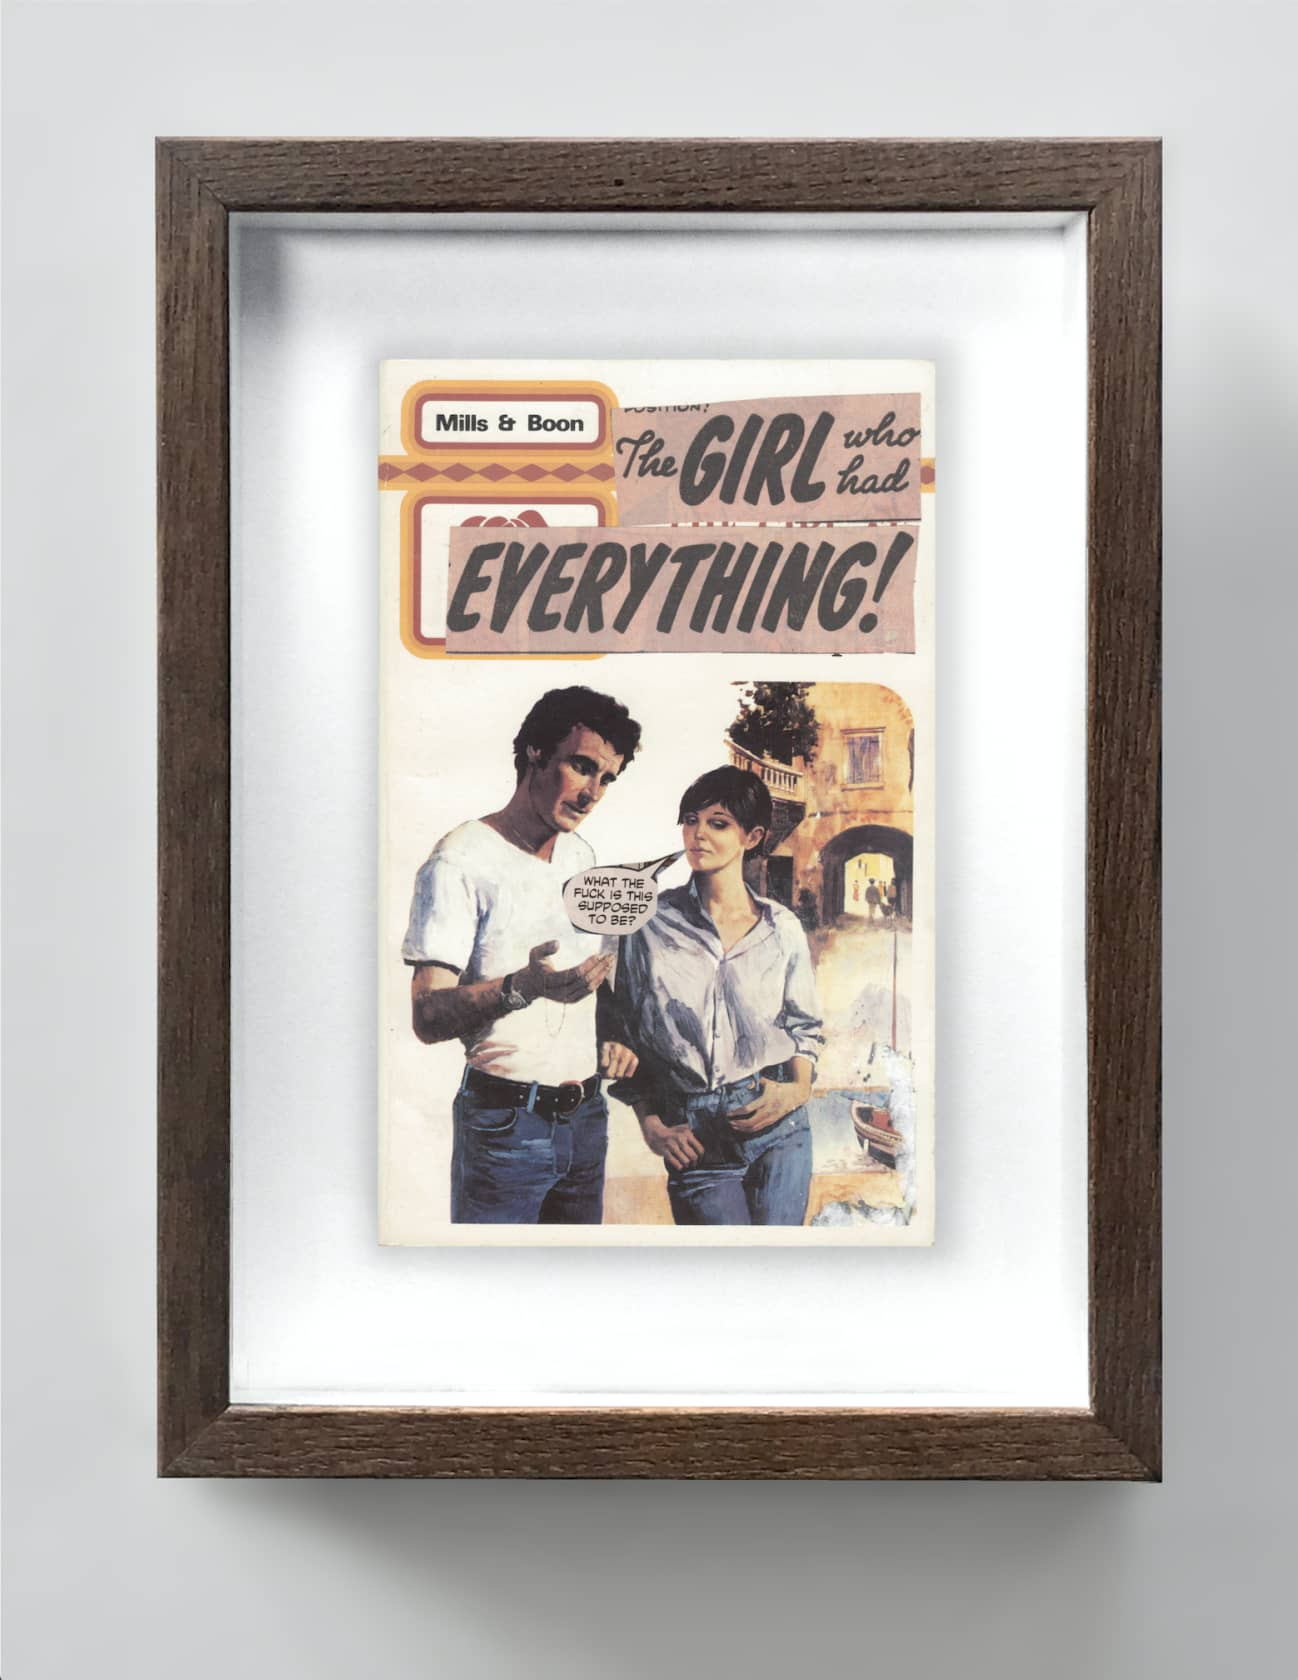 the connor brothers The Girl Who Had Everything Collage on vintage paperback book